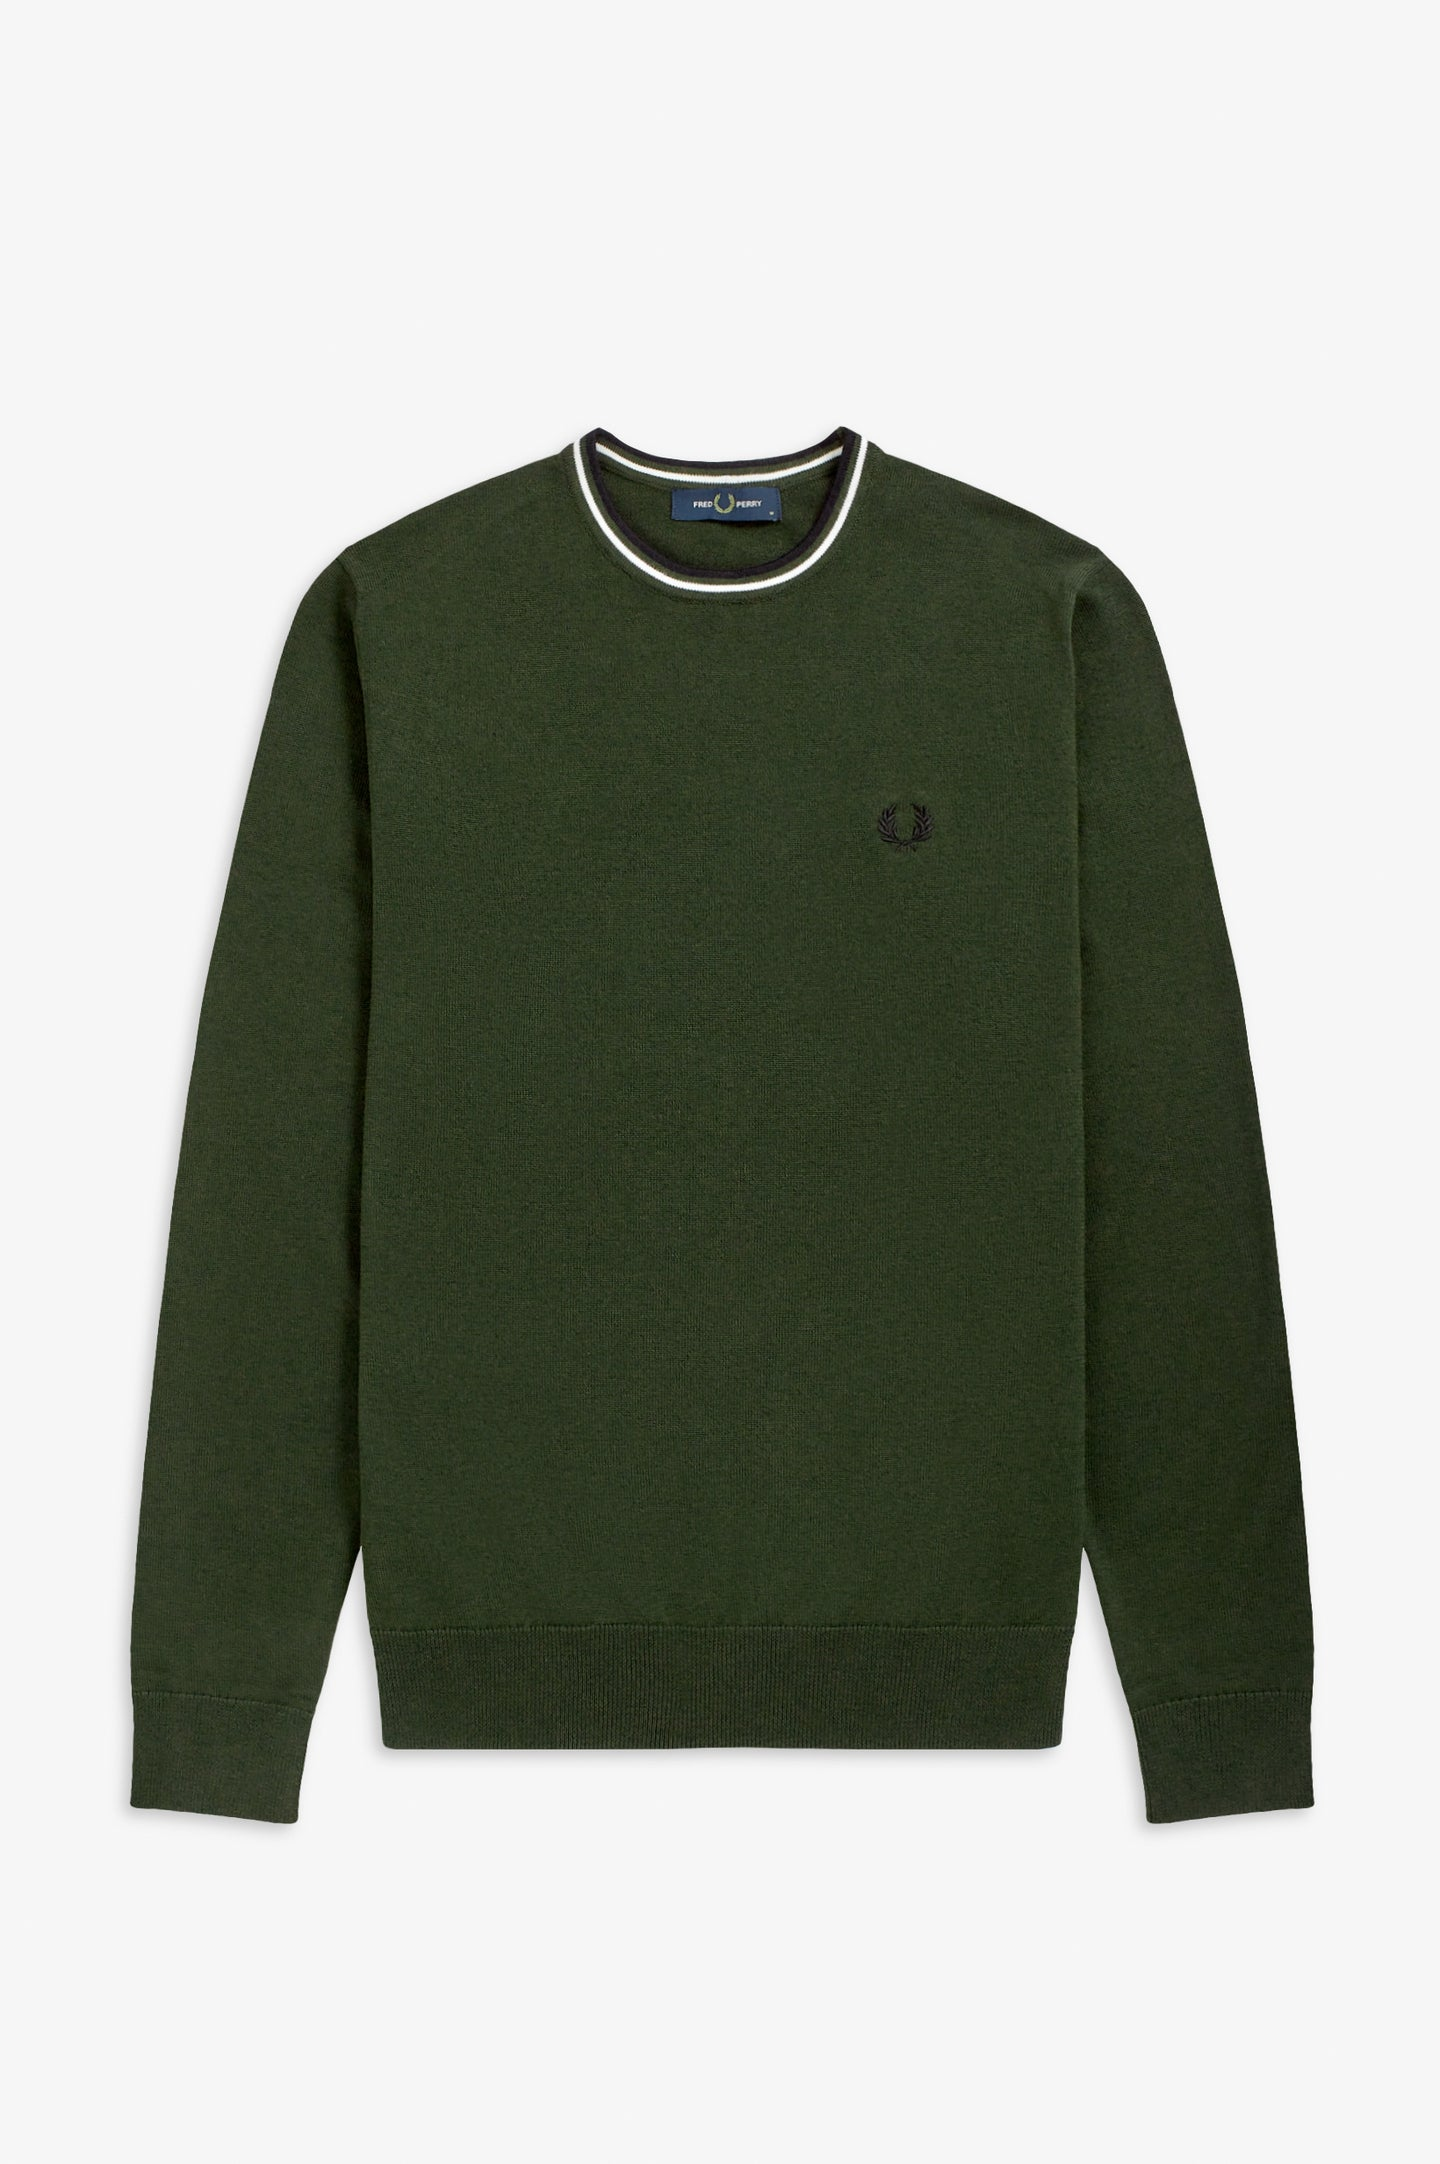 FRED PERRY - PULLOVER - M12 HNT GRN/SWHT/BLK